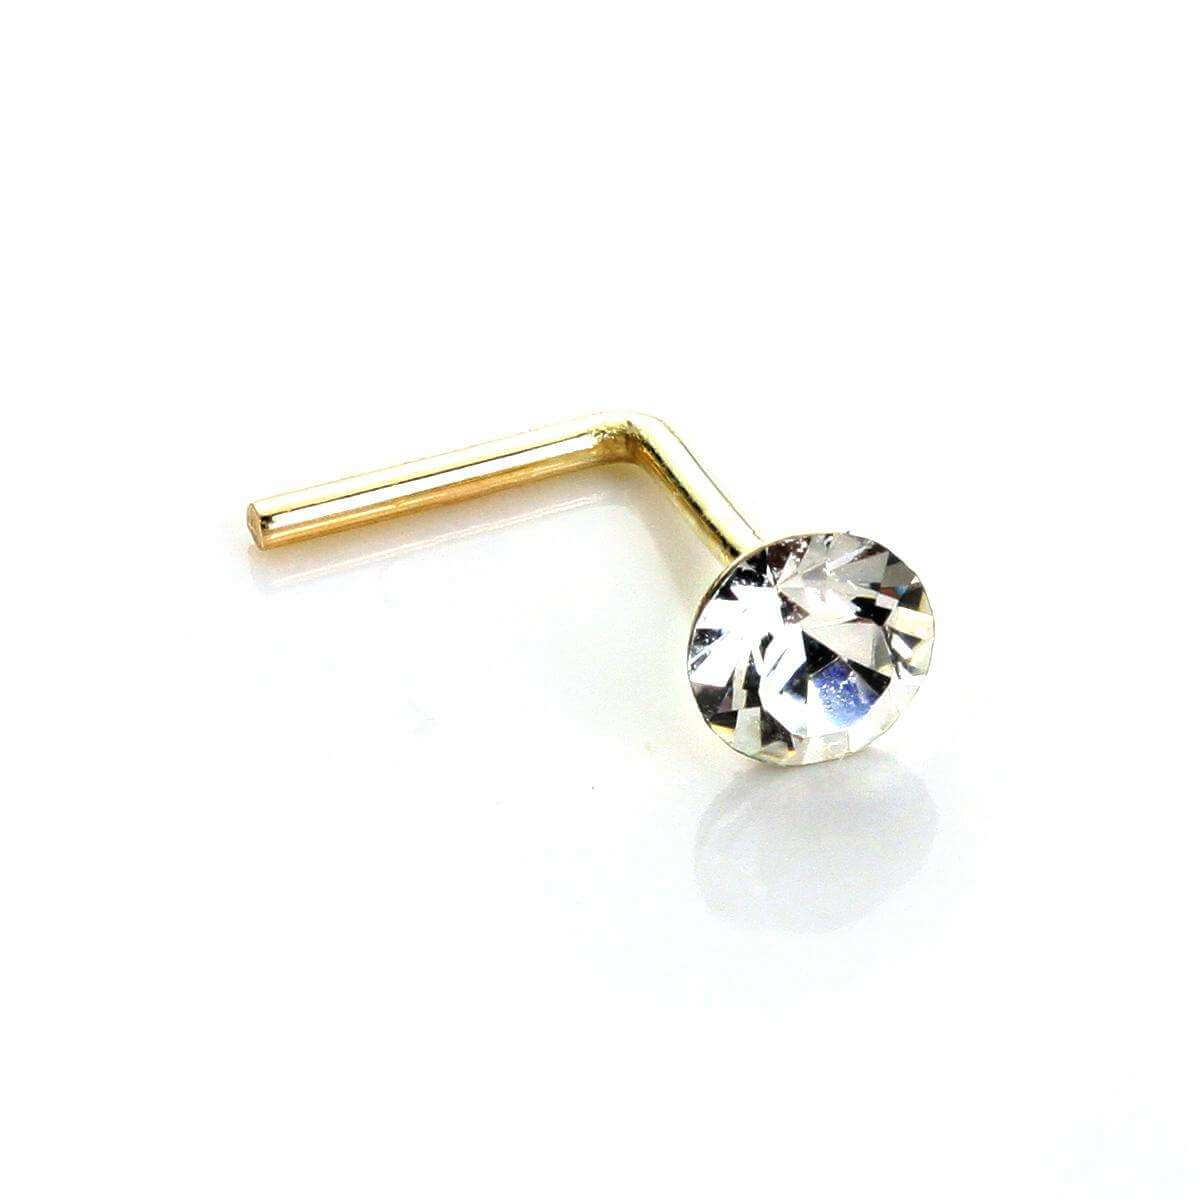 9ct Yellow Gold Clear Crystal 2.8mm Round Nose Stud